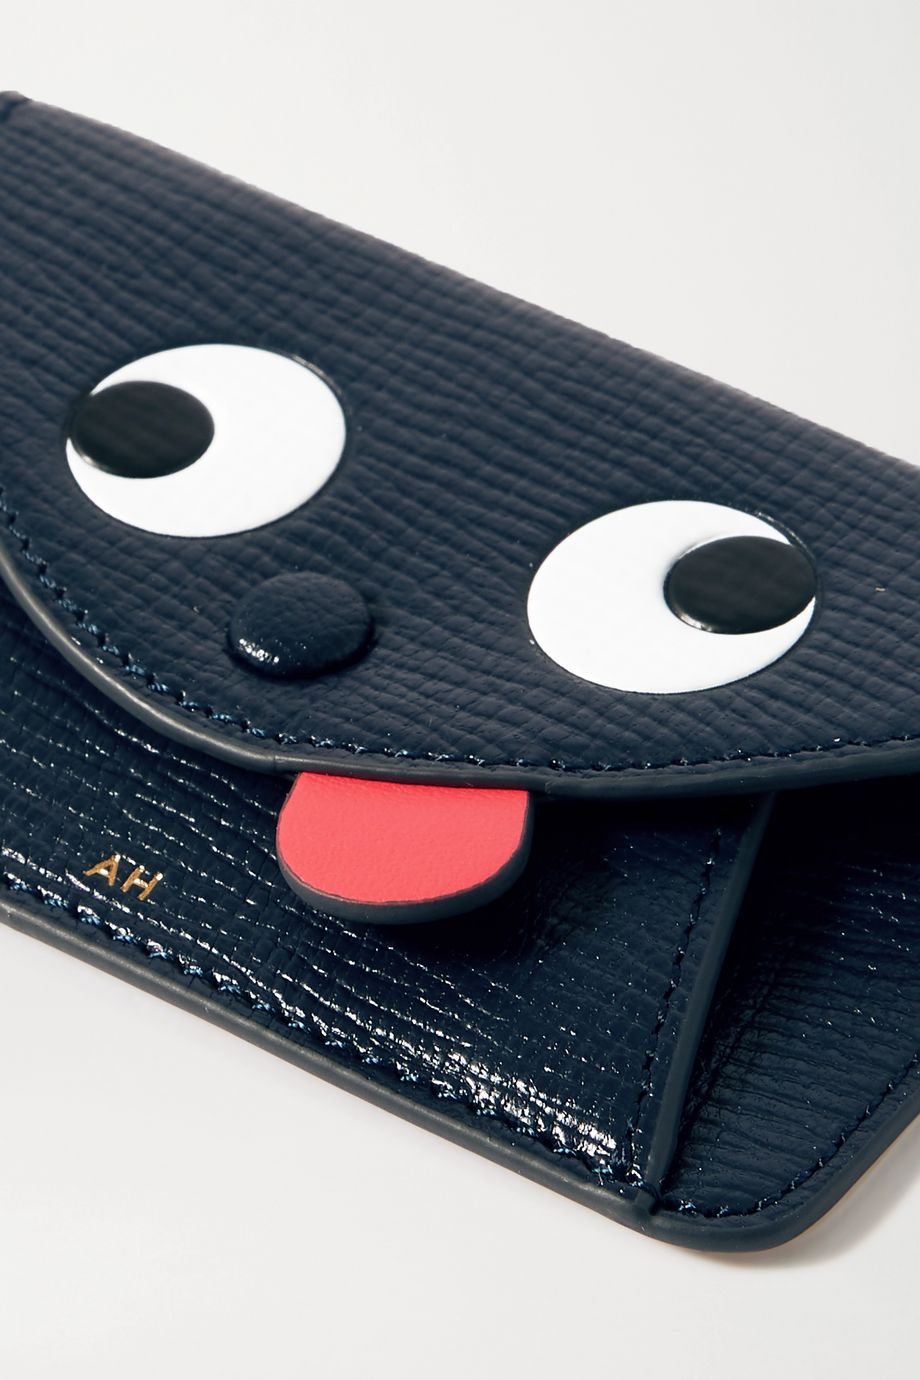 Anya Hindmarch Zany textured-leather cardholder sticker